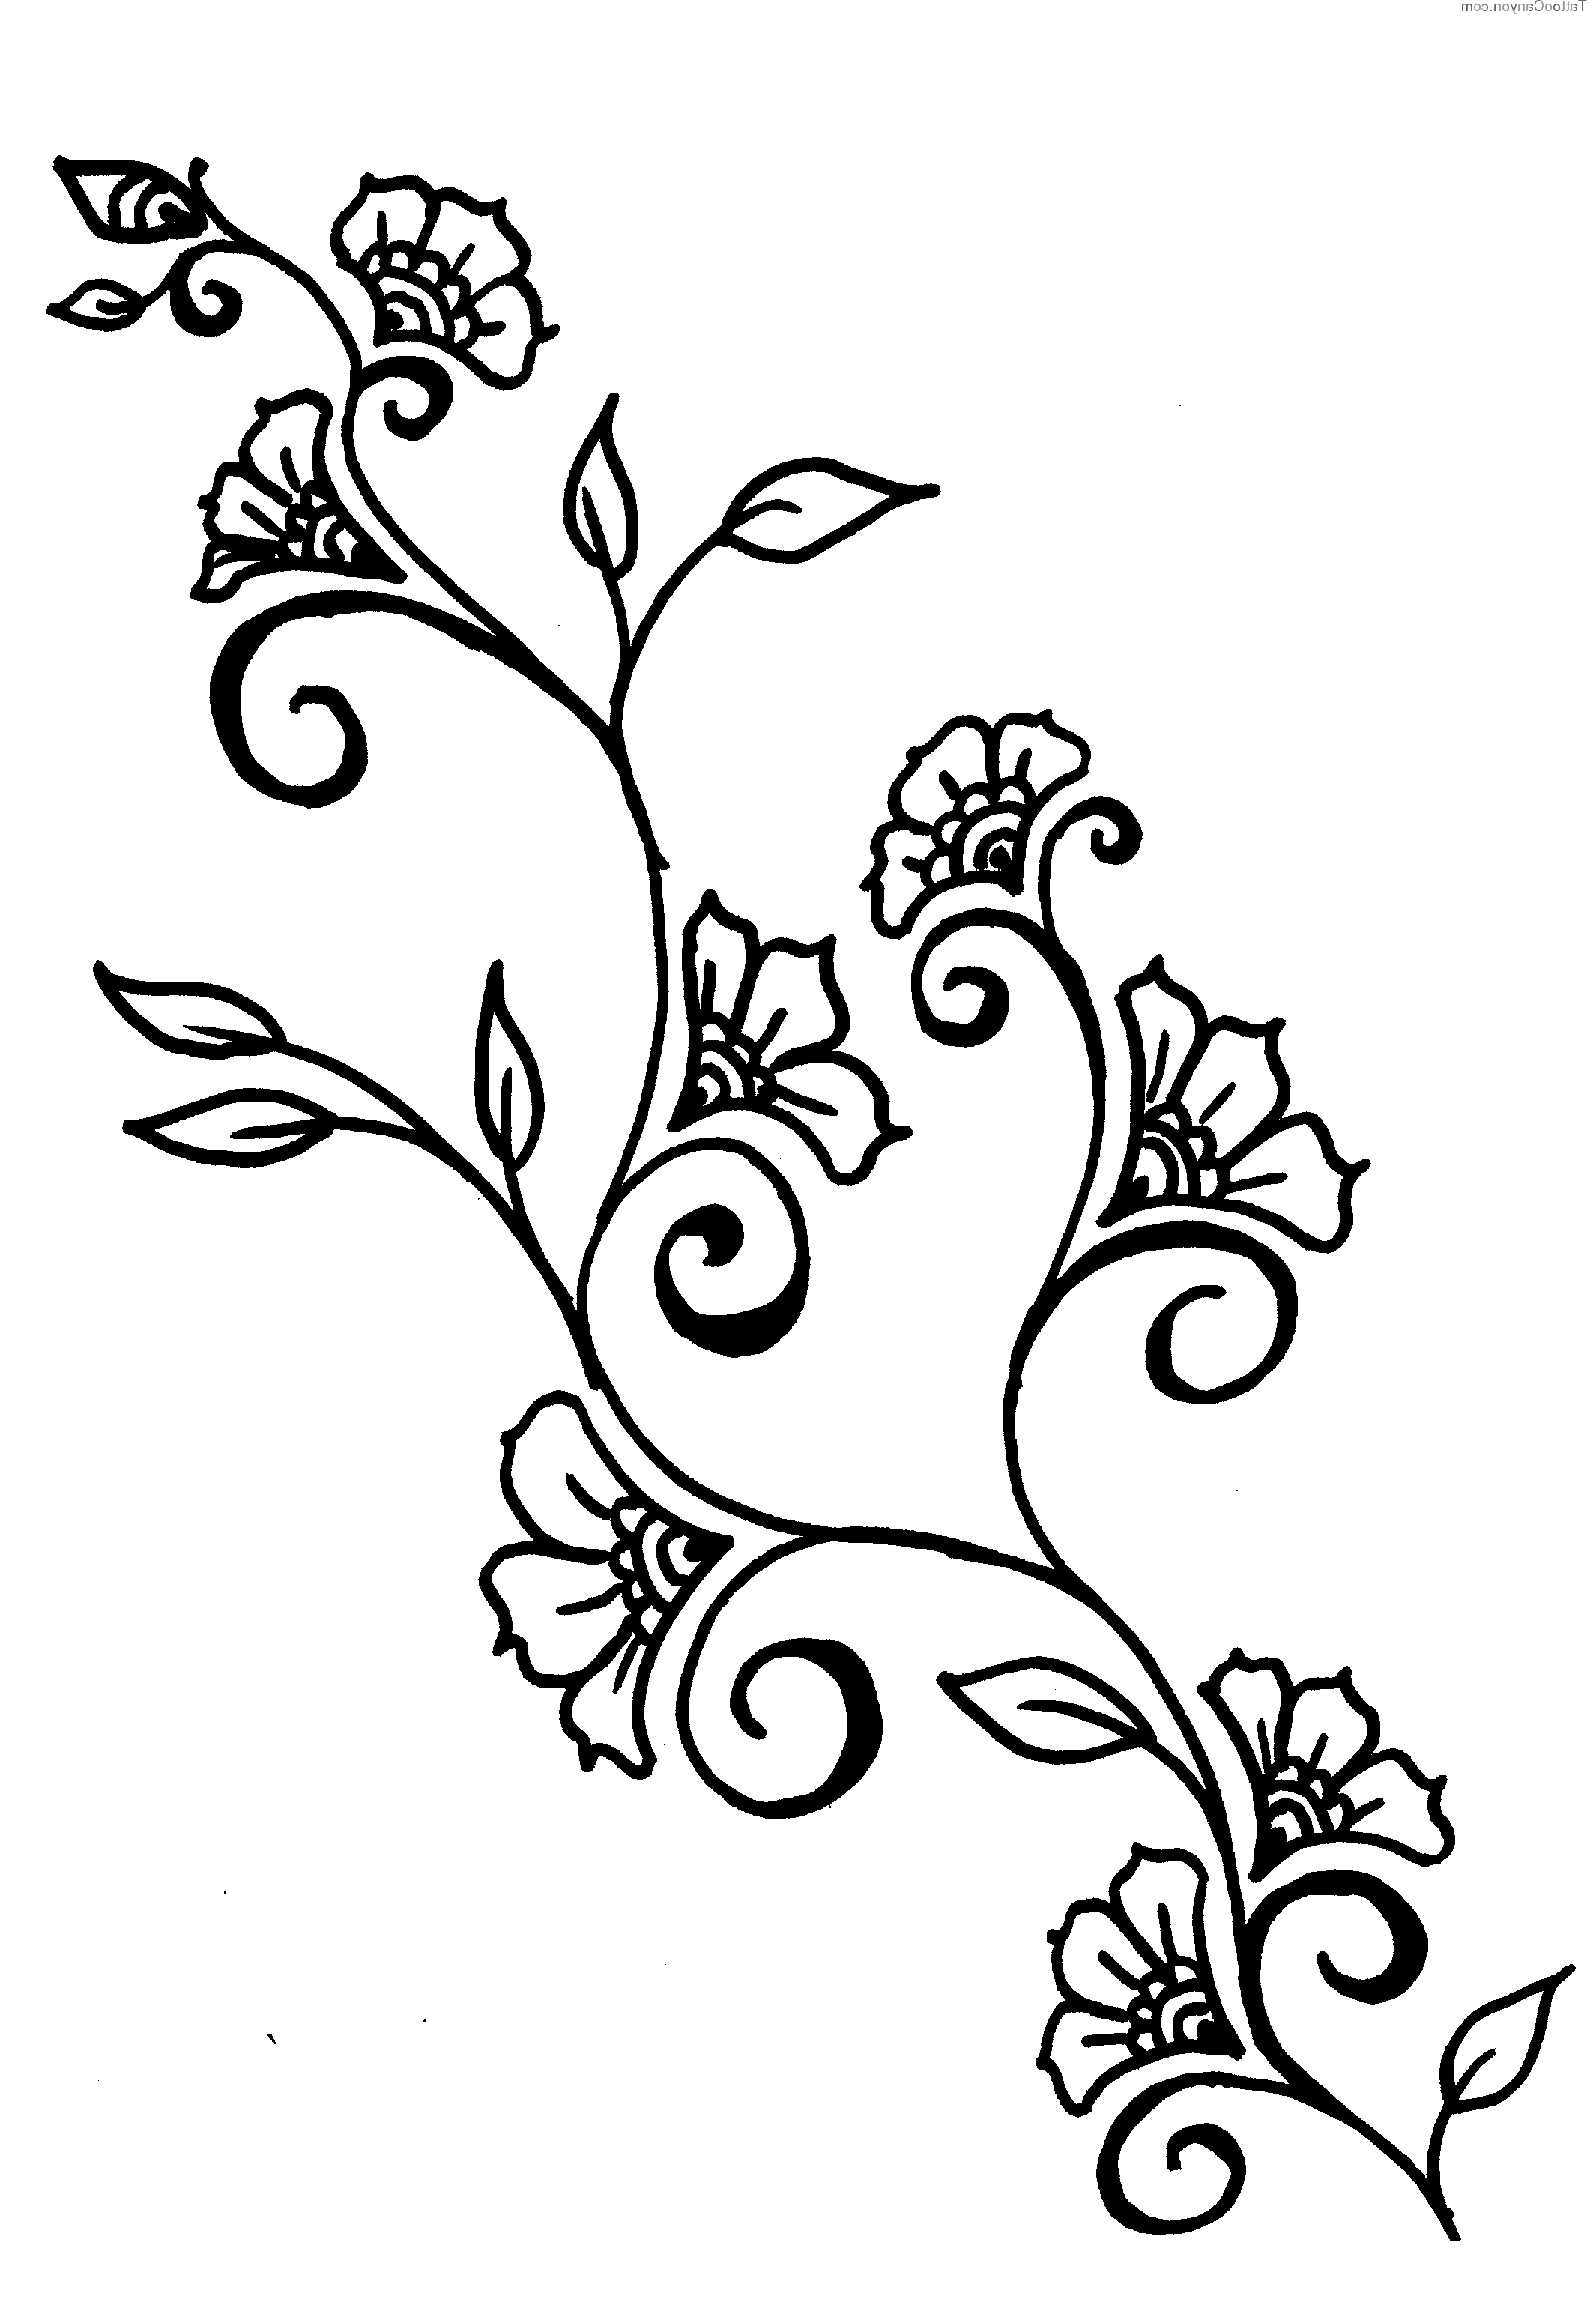 2130x3068 Drawings Of Vines And Flowers Easy Drawing At Getdrawings Free For Personal Use